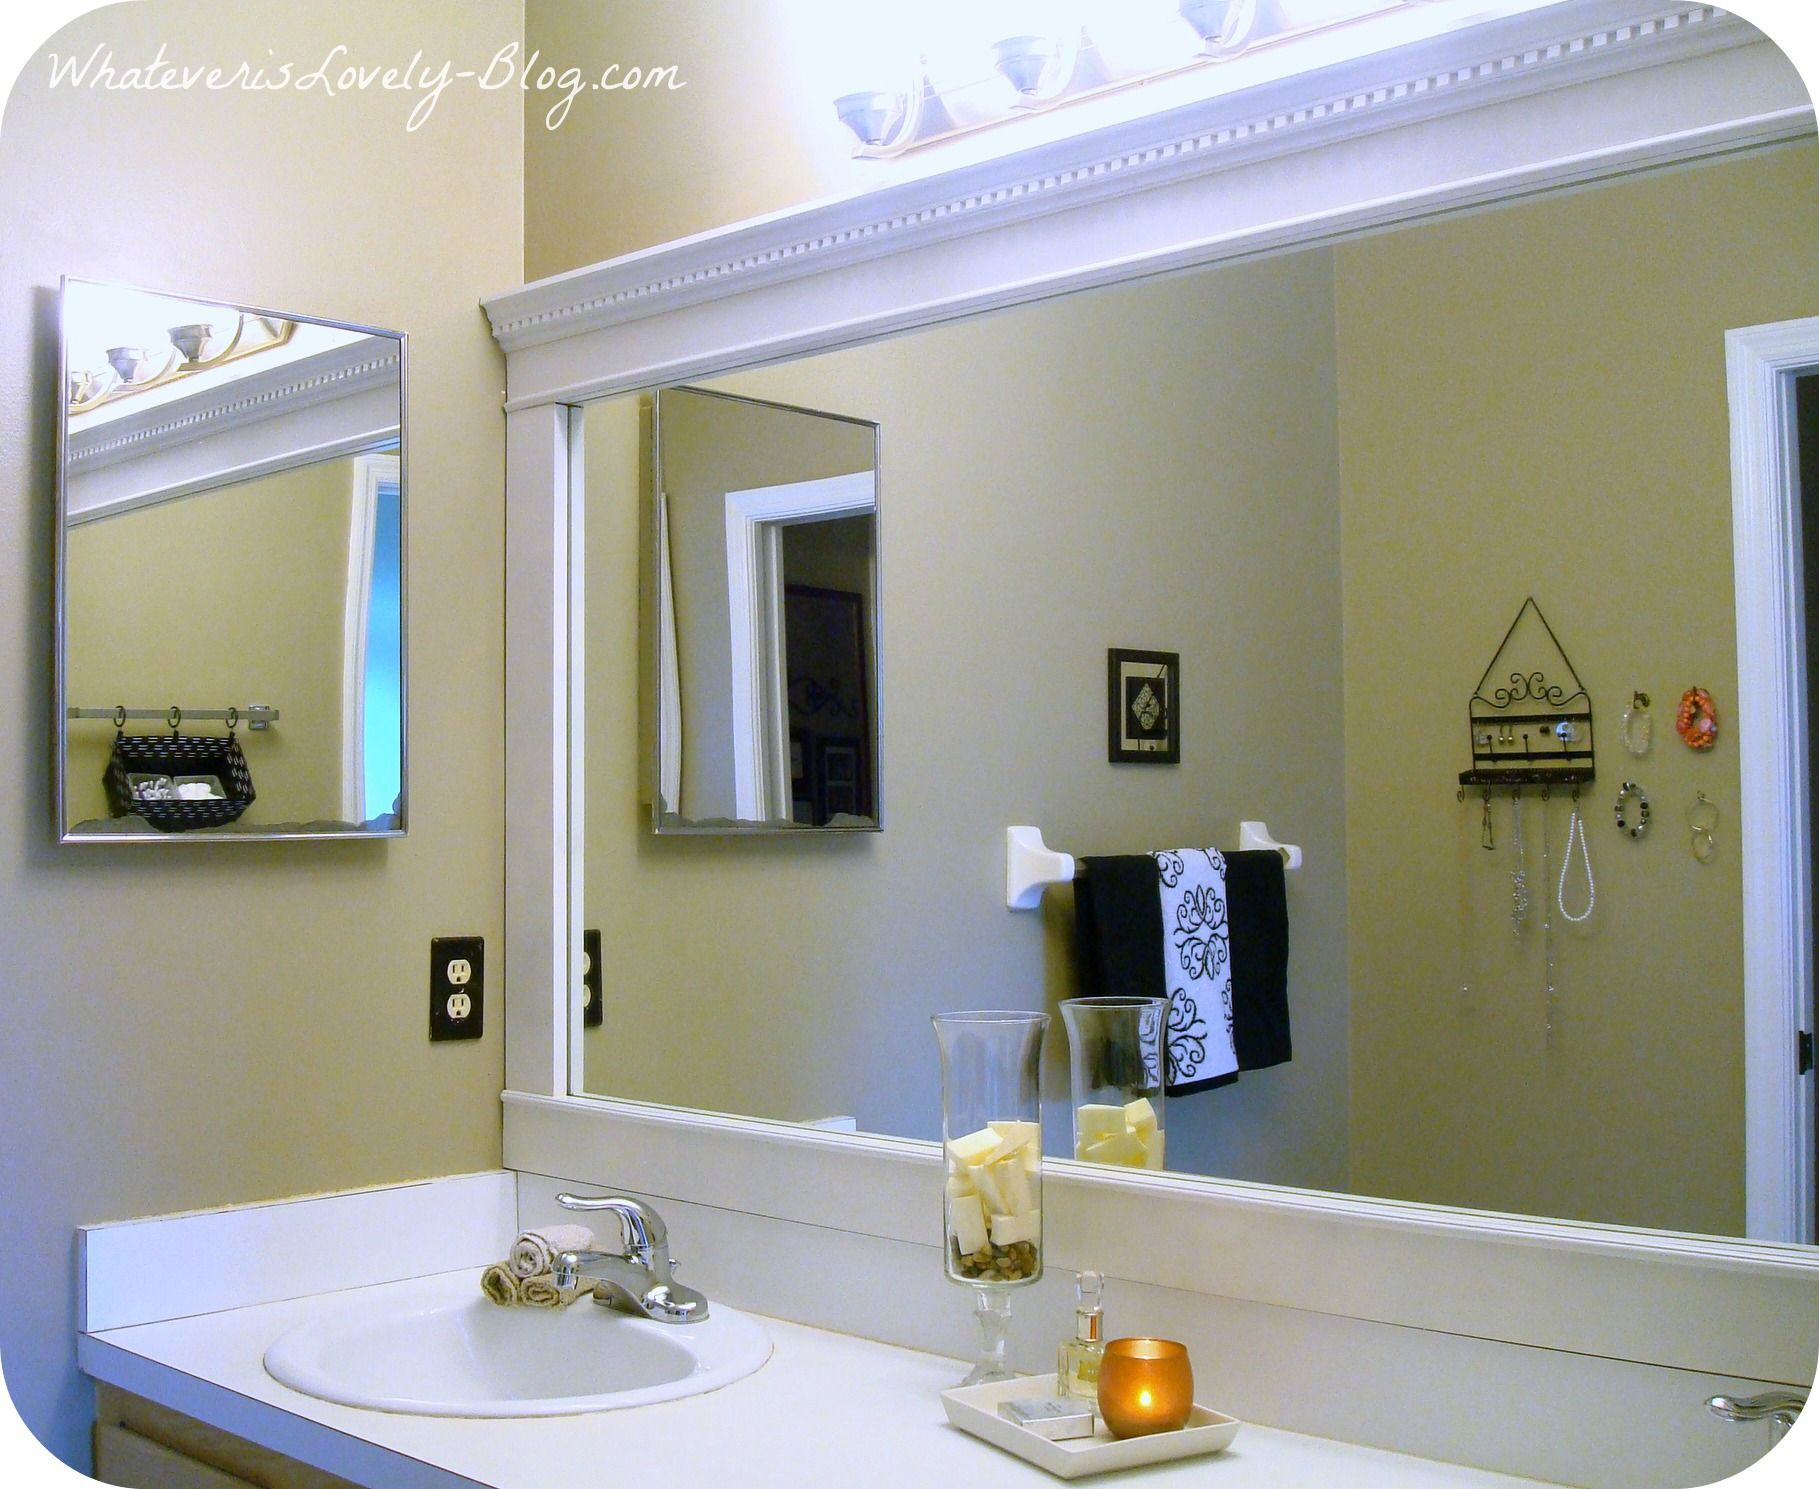 Beau Mirror How To Frame Bathroom Mirror Mirror Bathroom Framed Mirror